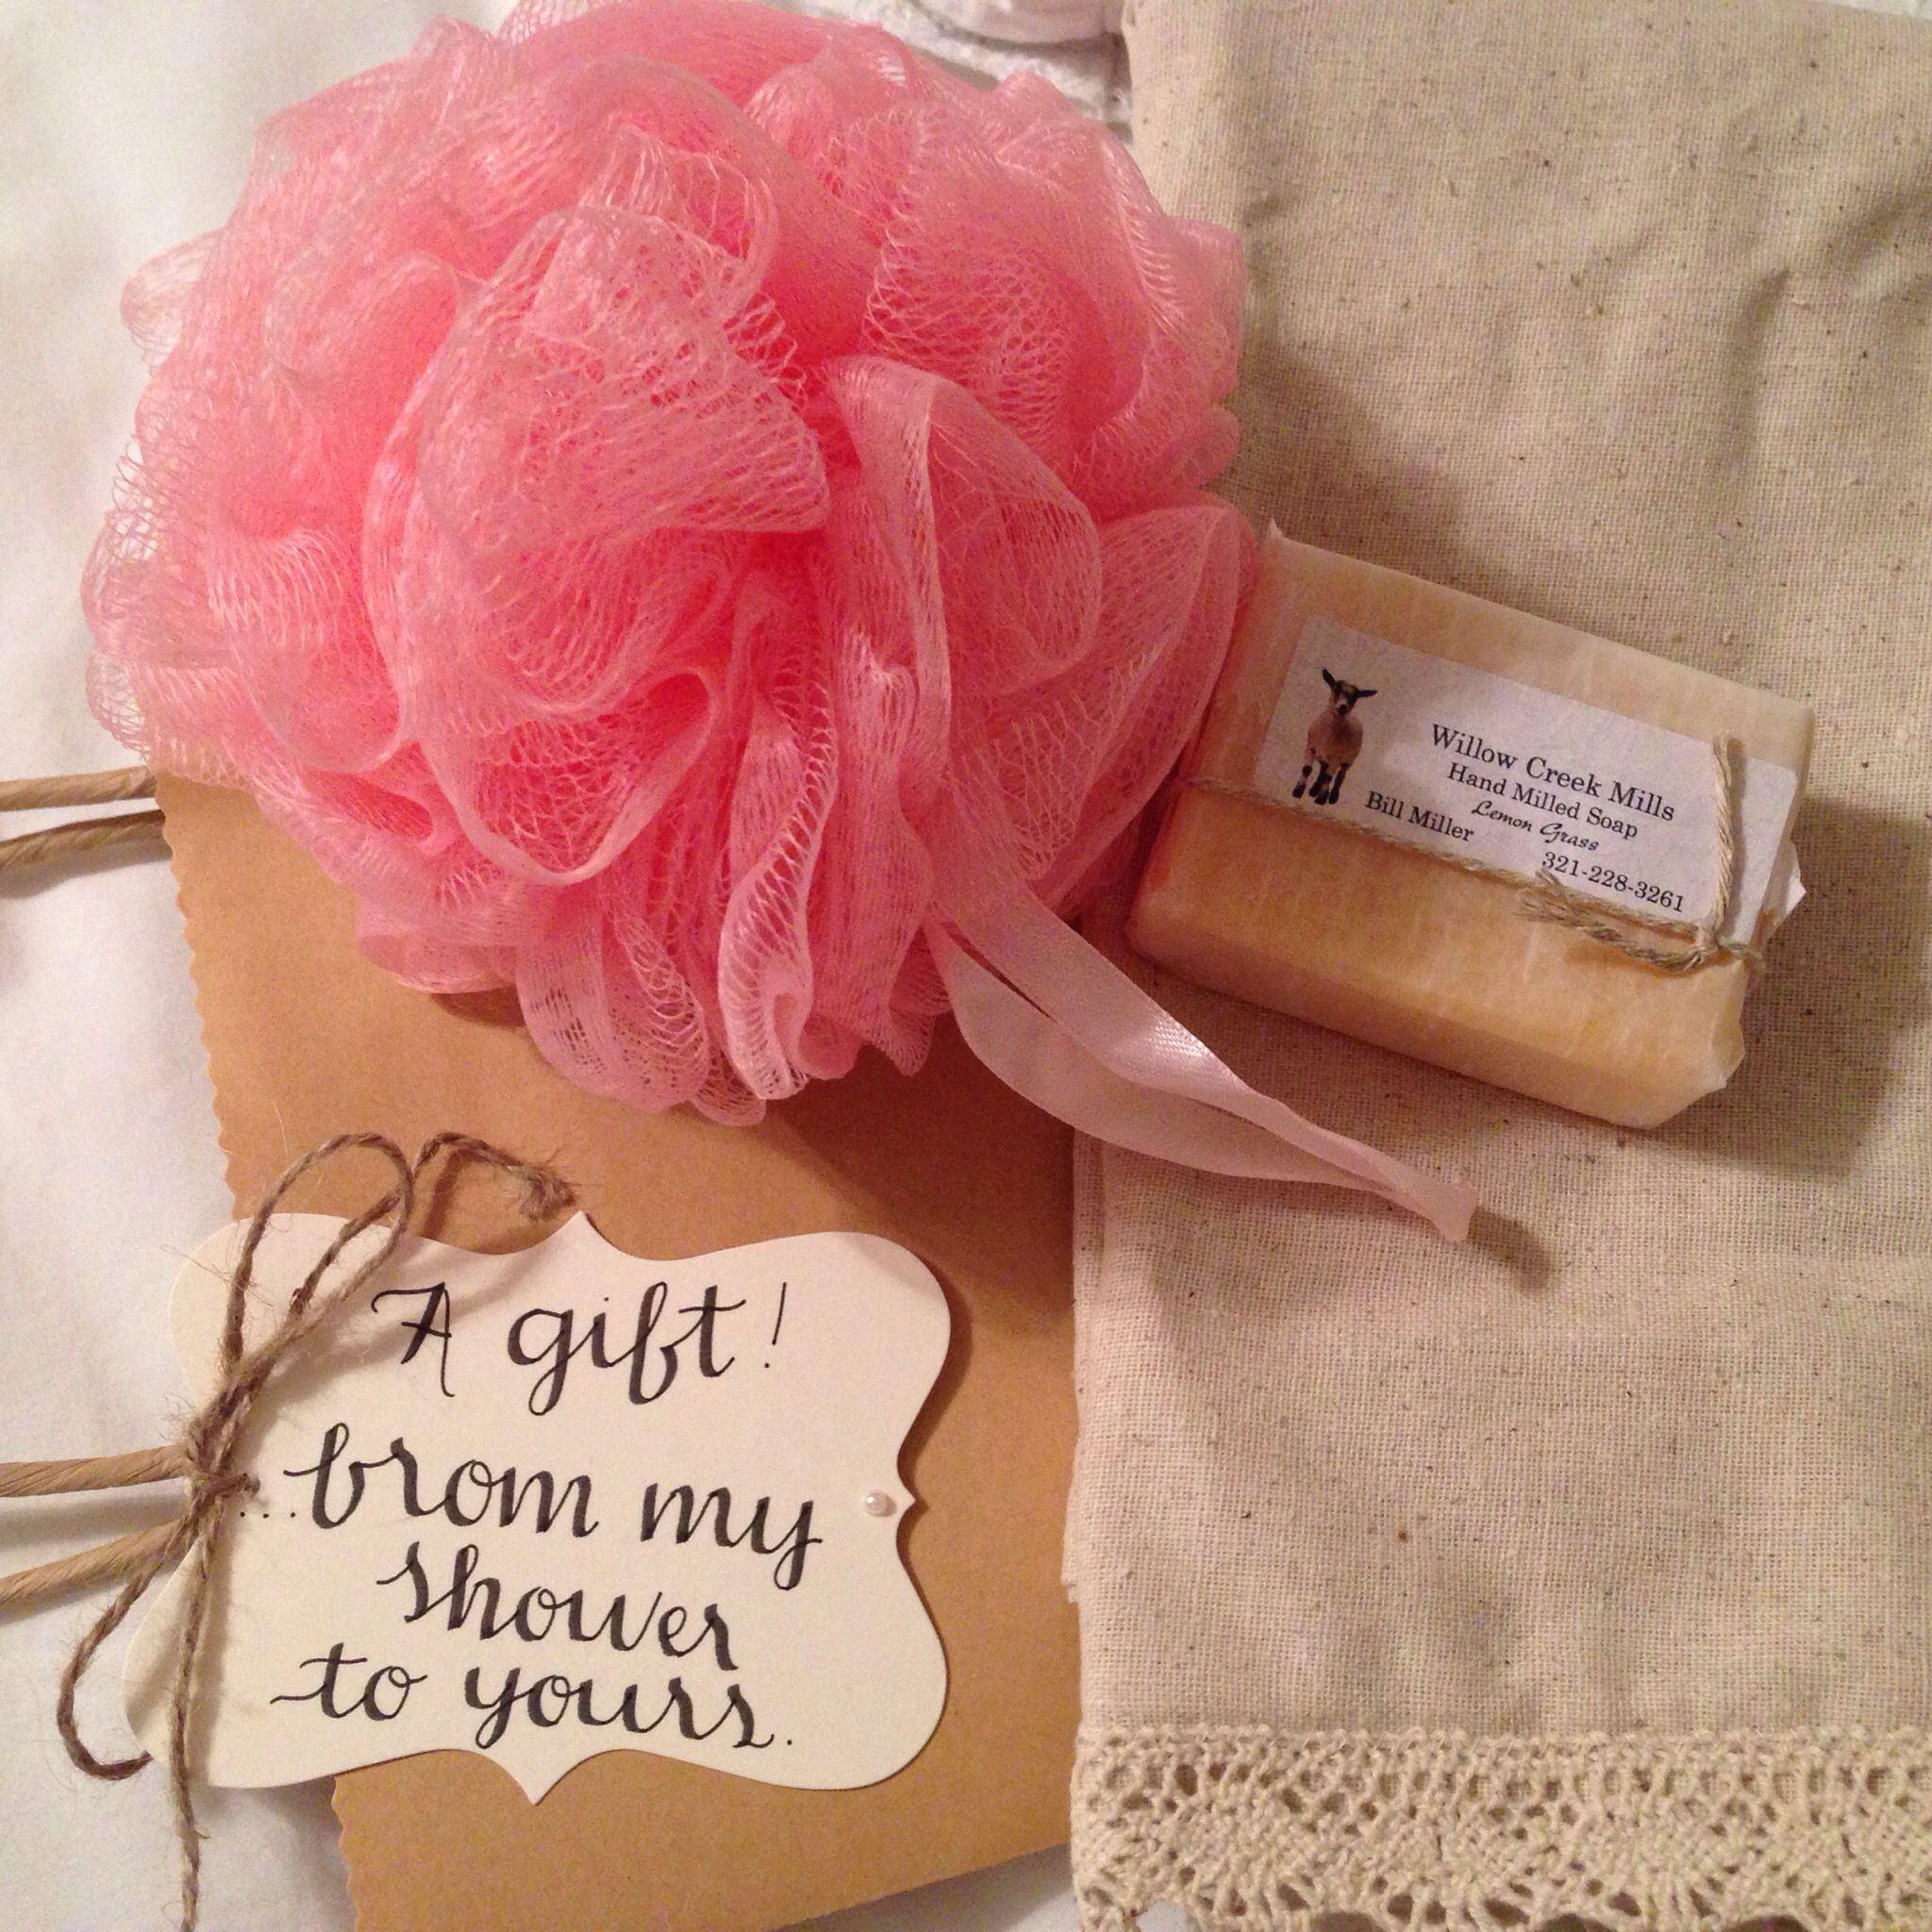 """Cute Wedding Gift Ideas: Cute Gift Idea For Wedding Shower Guests! """"A Gift From My"""